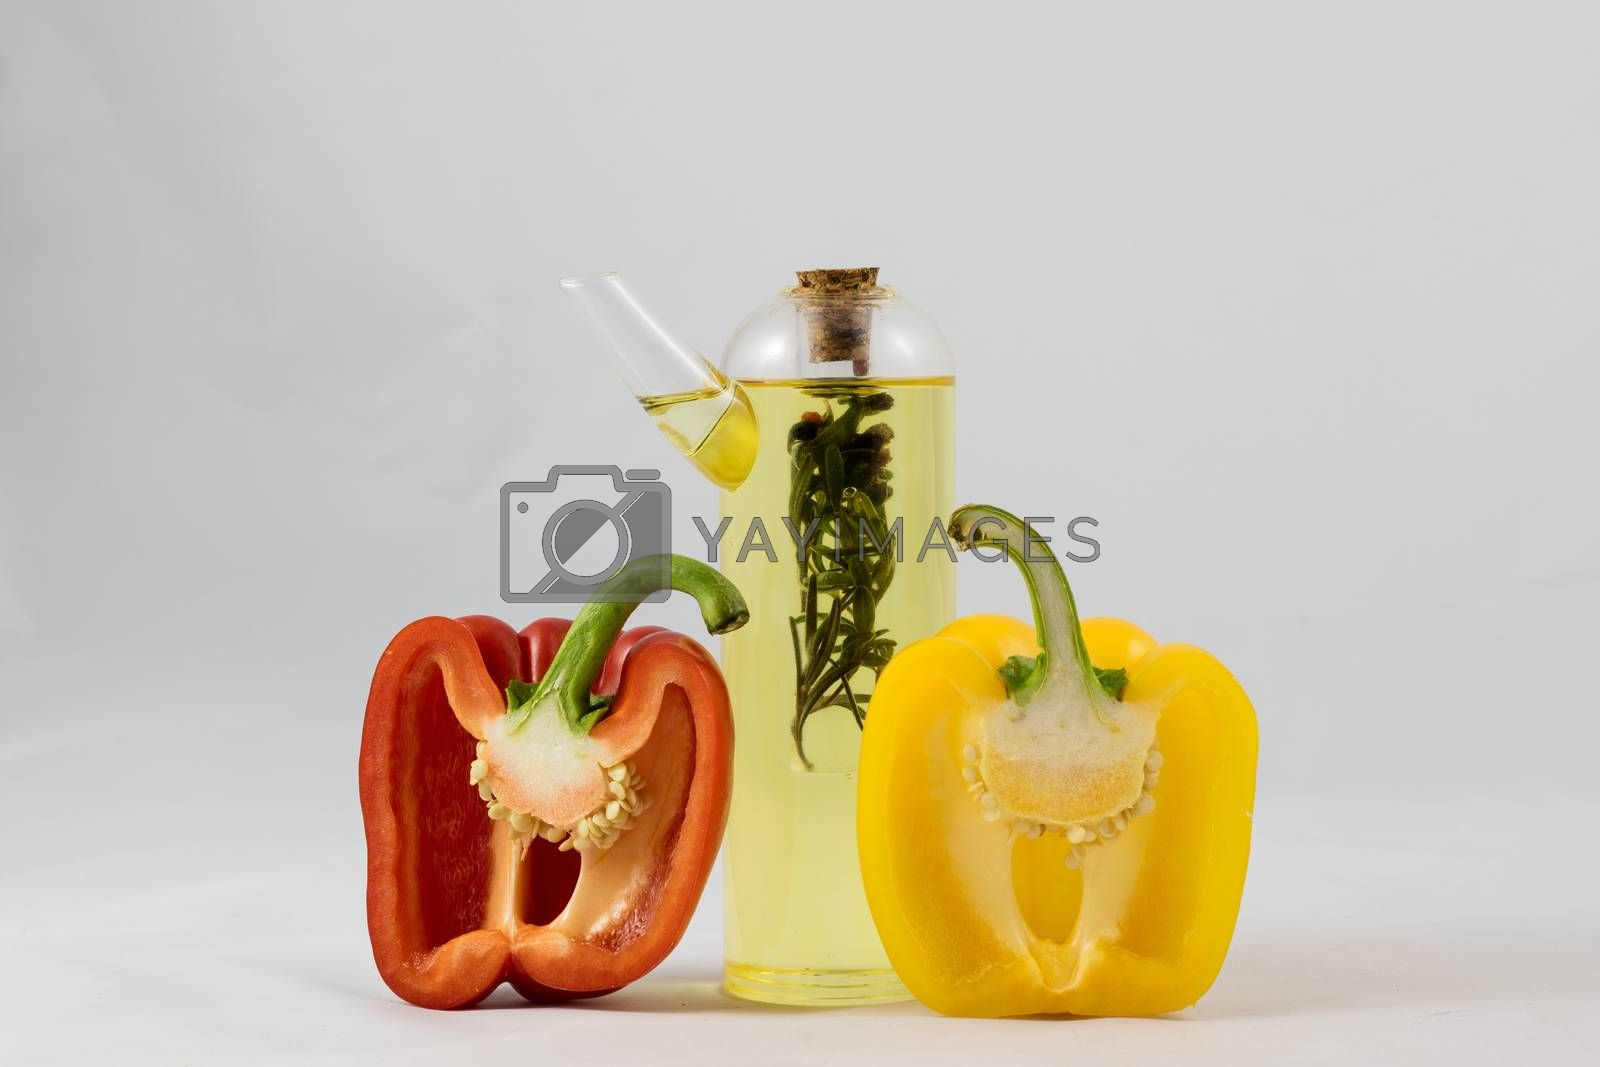 Great Italian food, peppers, tomatoes and olive oil by wytrazek